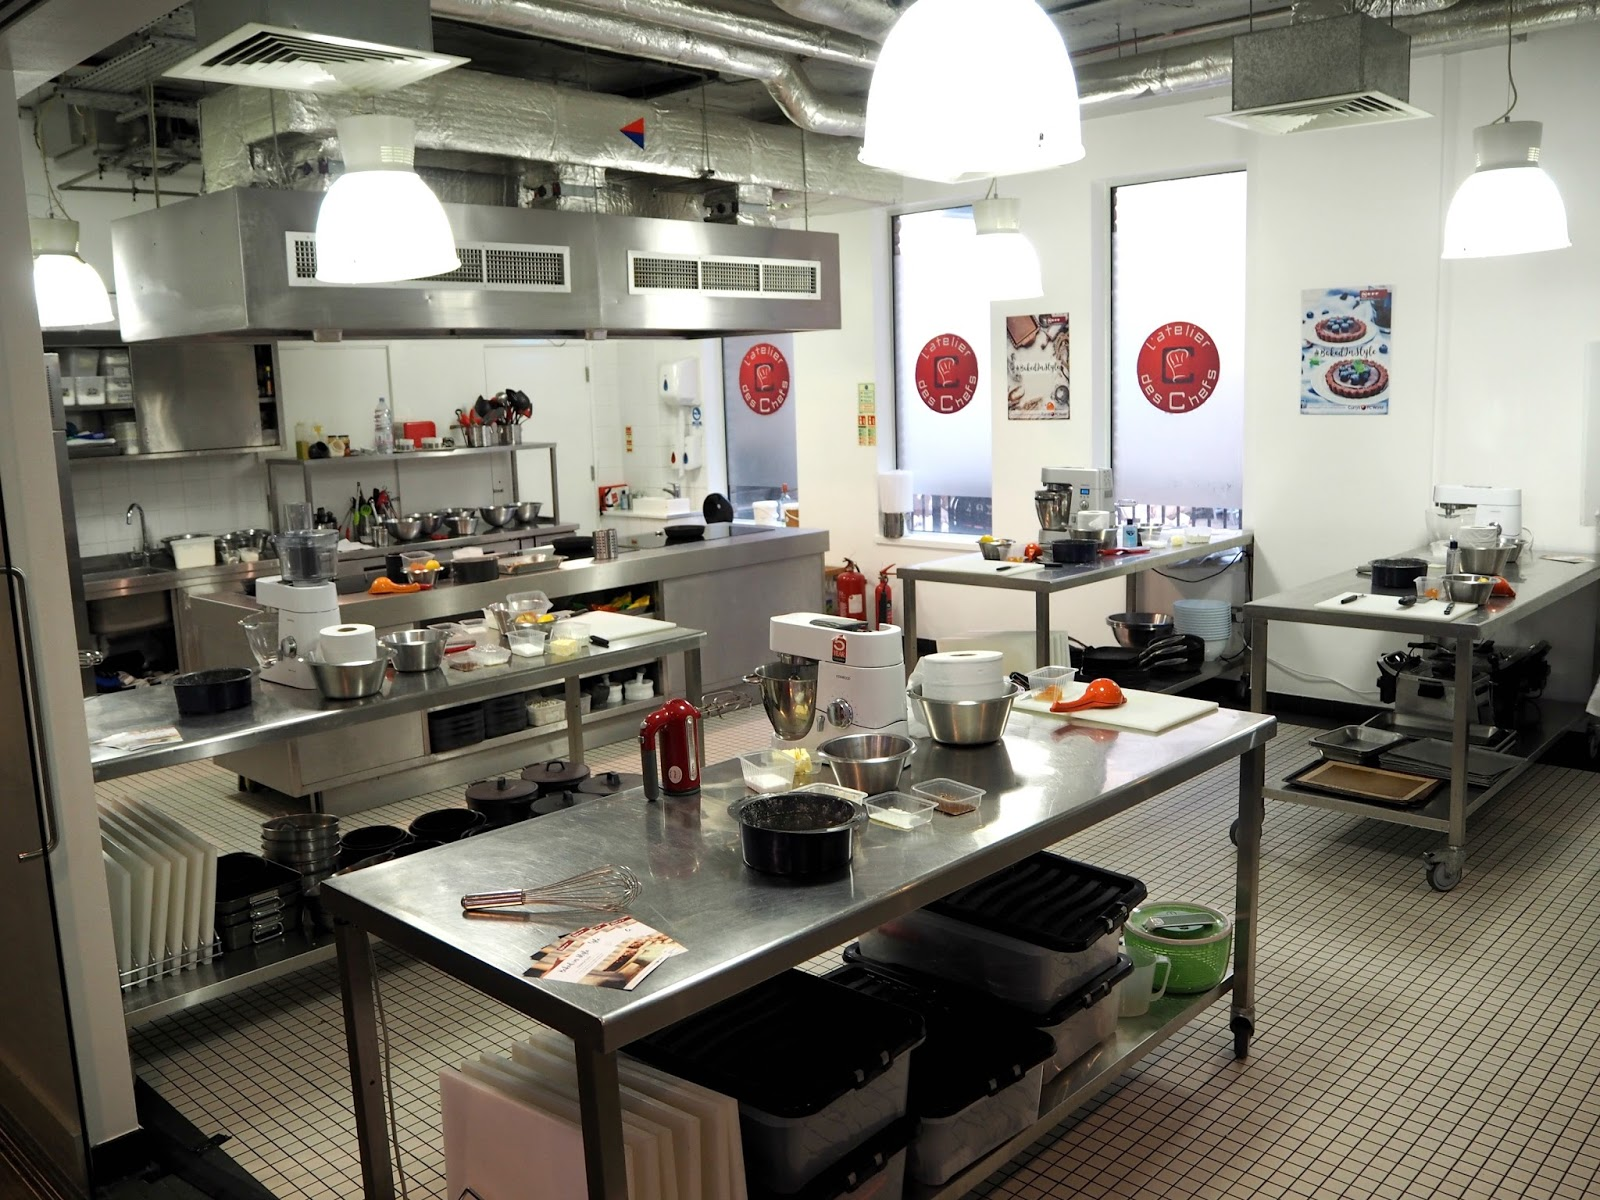 L'atelier des chefs showroom kitchen st. pauls london